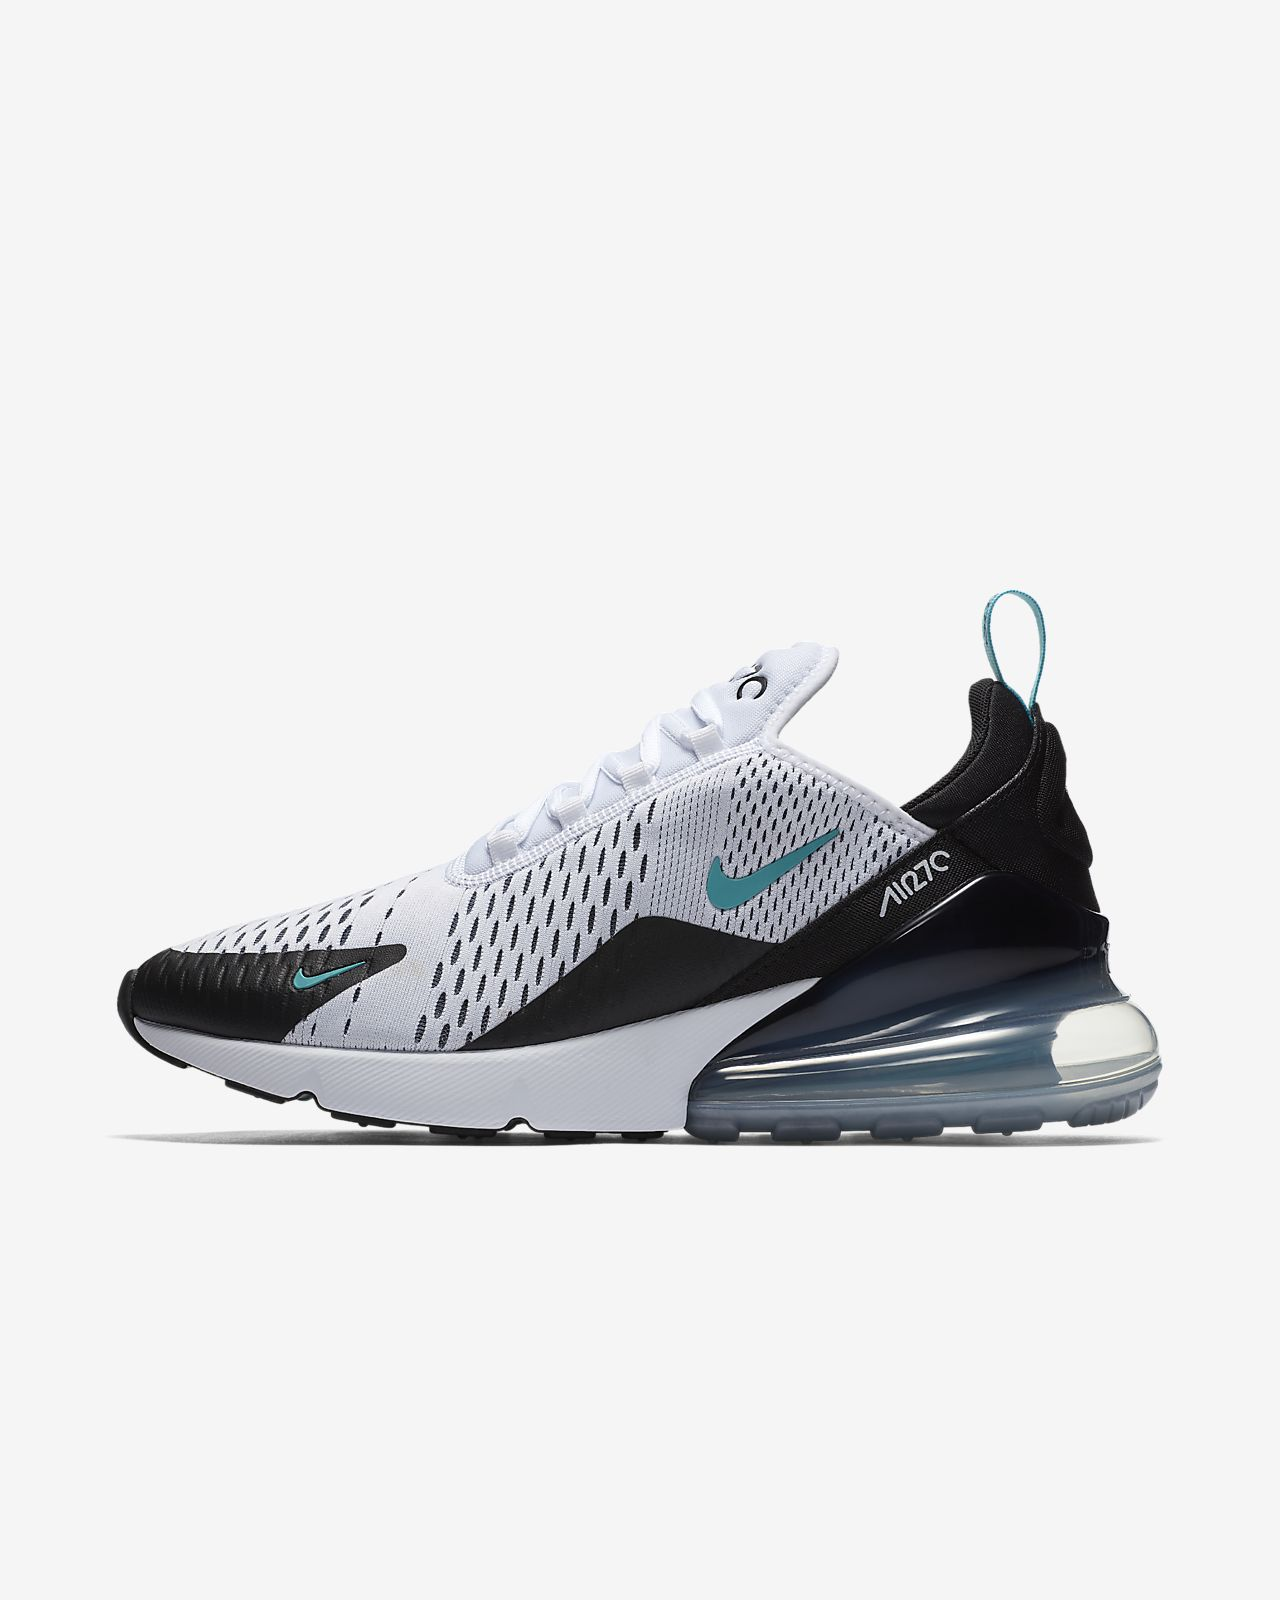 Nikelab Air Max 2019 Off White Total Black Best